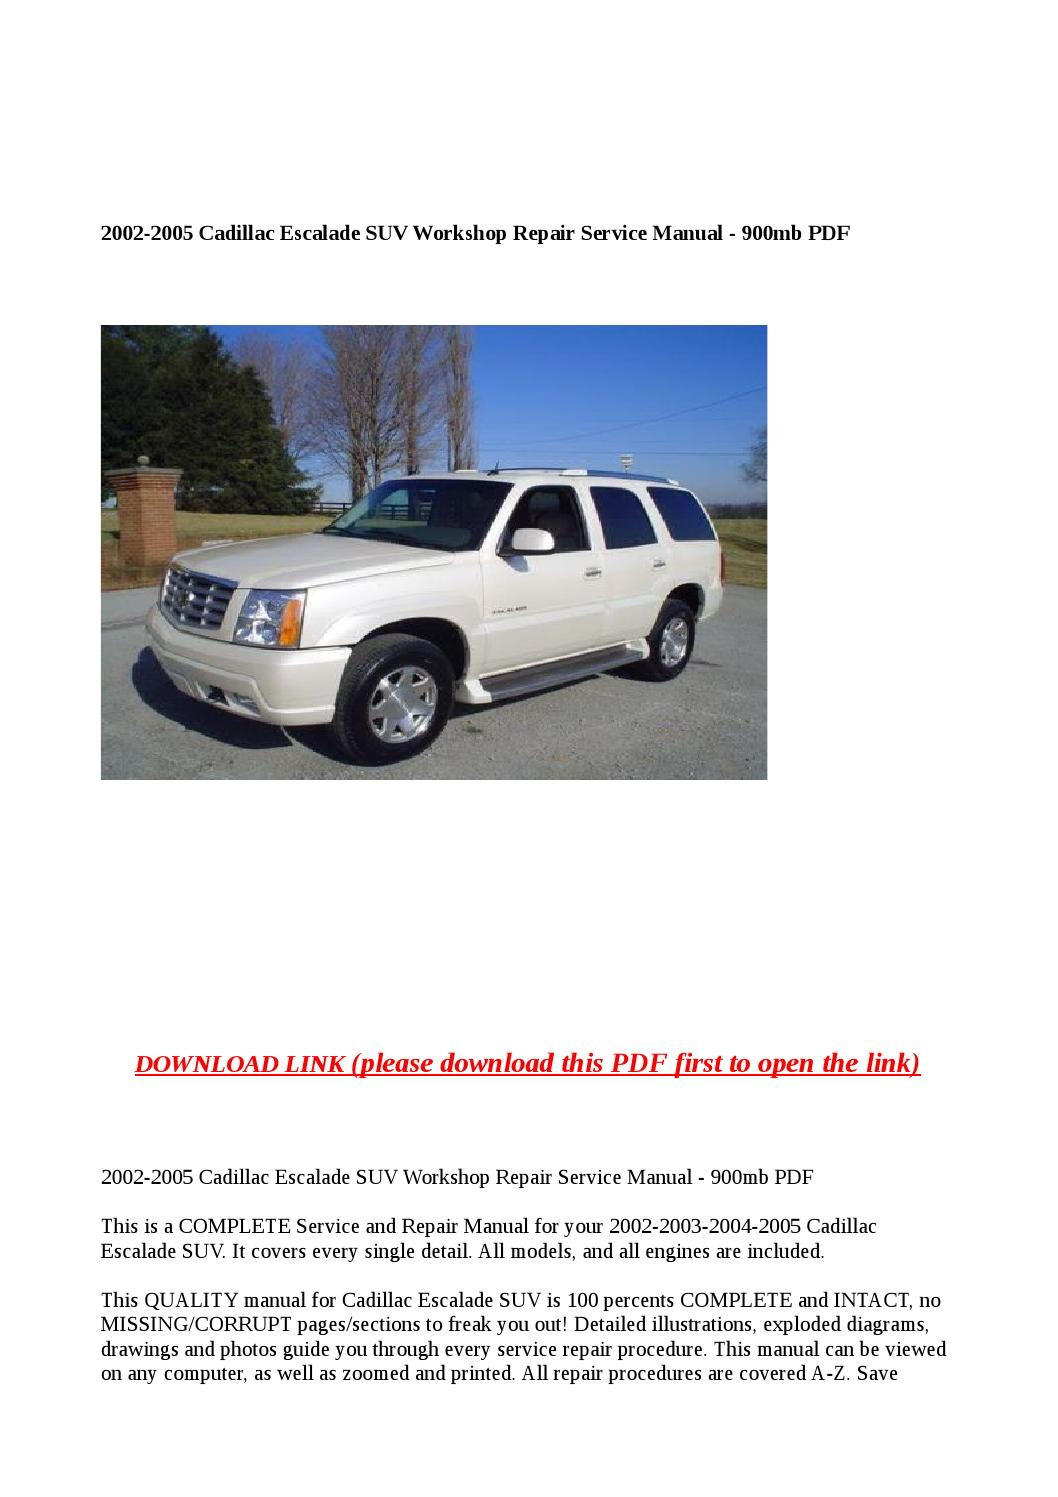 2002 2005 cadillac escalade suv workshop repair service manual 900mb pdf by  dale - issuu